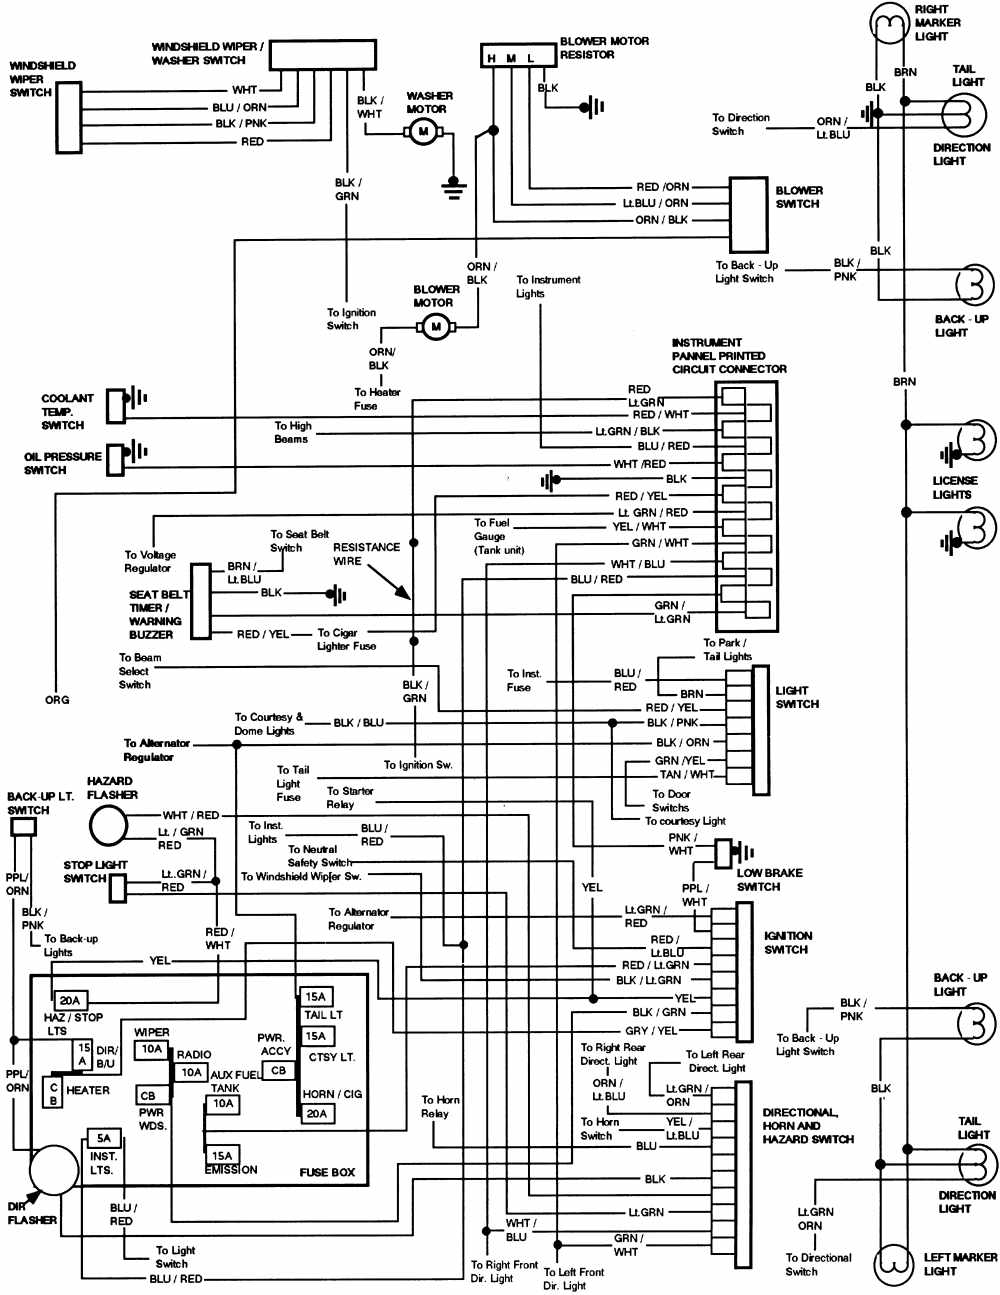 wiring harness f150 diagram 1984